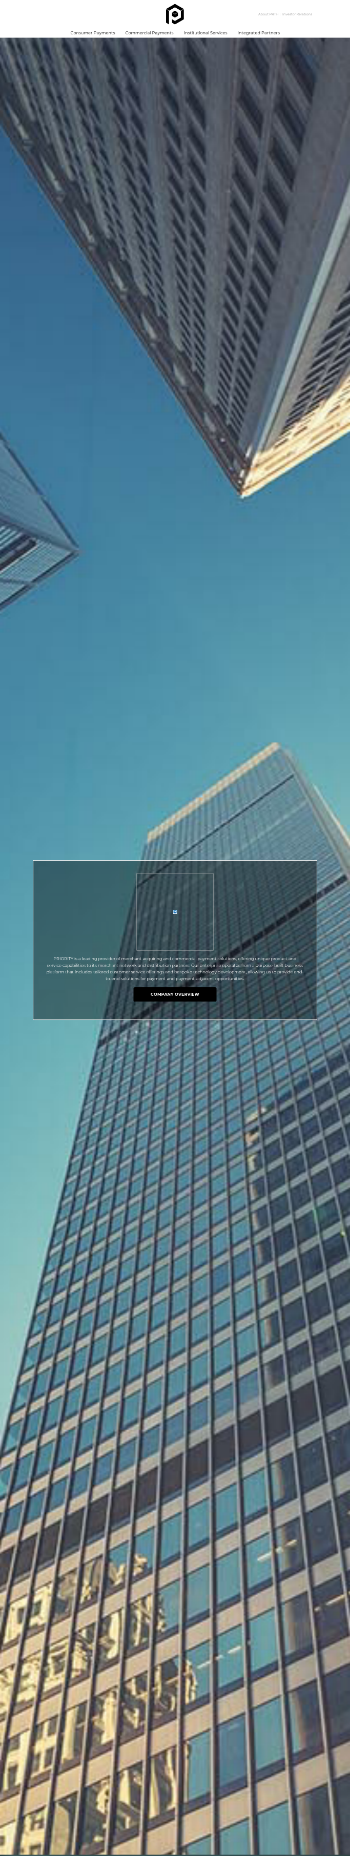 Priority Technology Holdings, Inc. Website Screenshot